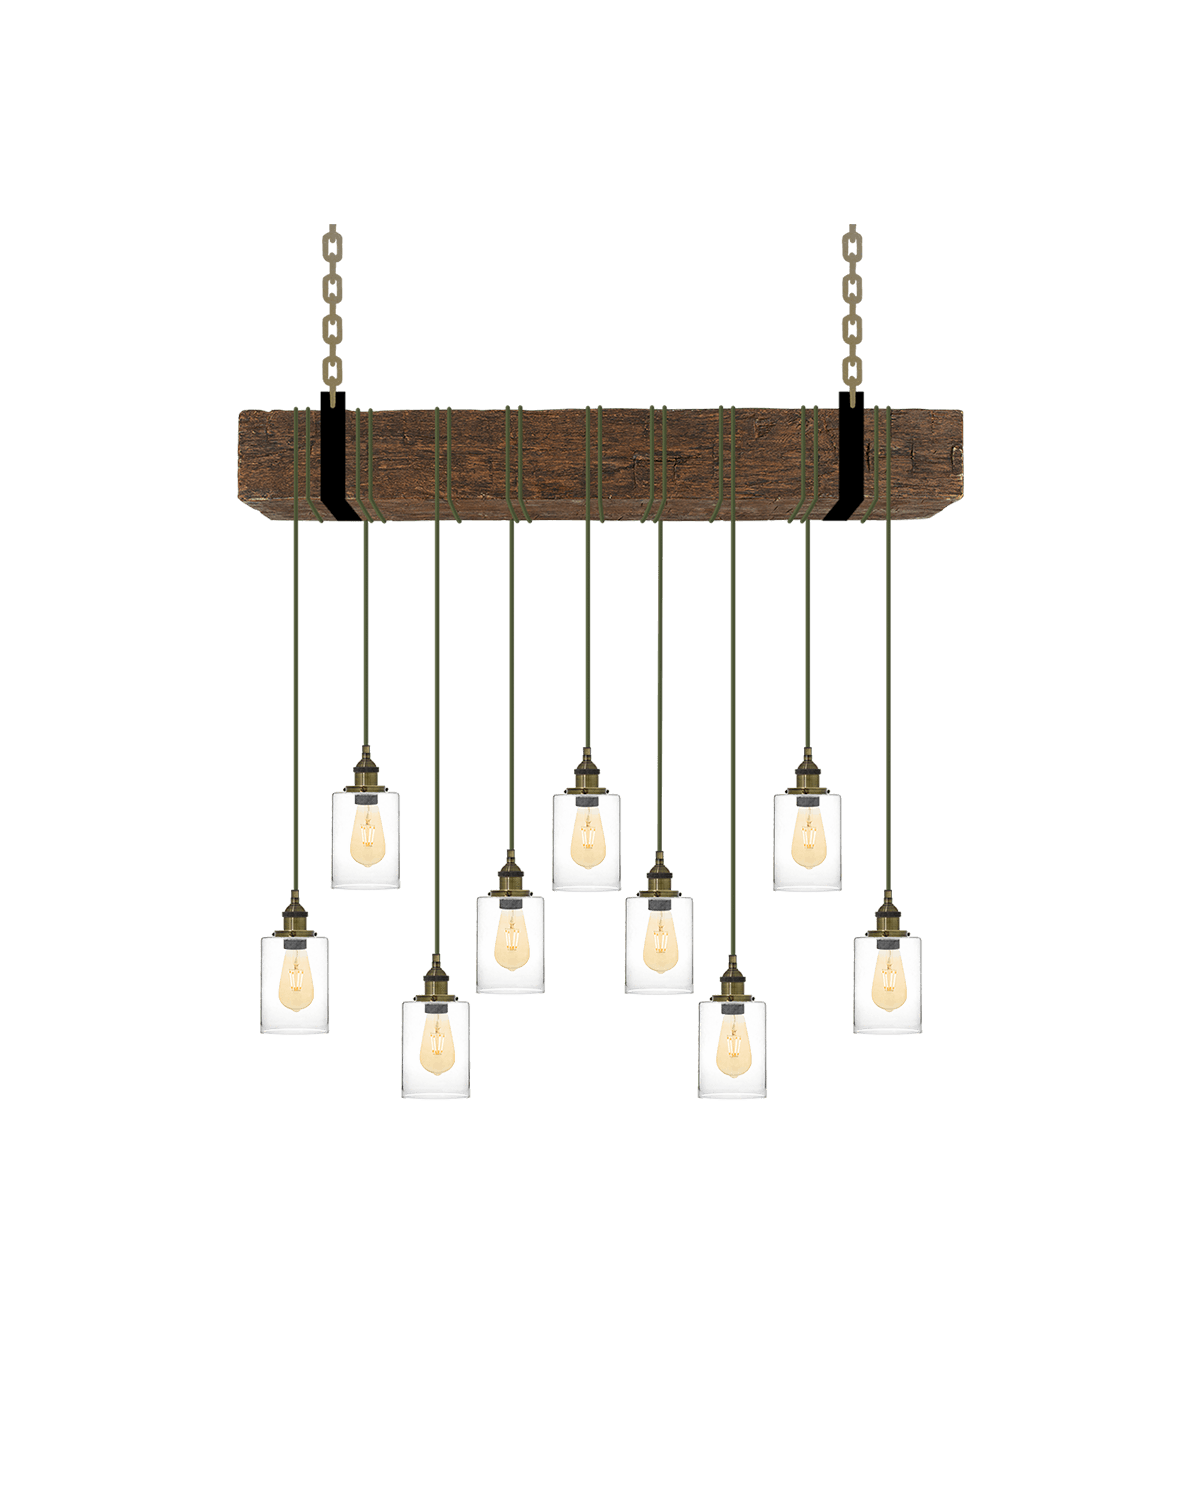 Faux Beam 9 Pendant Wrap: Olive and Glass Shades Hangout Lighting 4' Beam